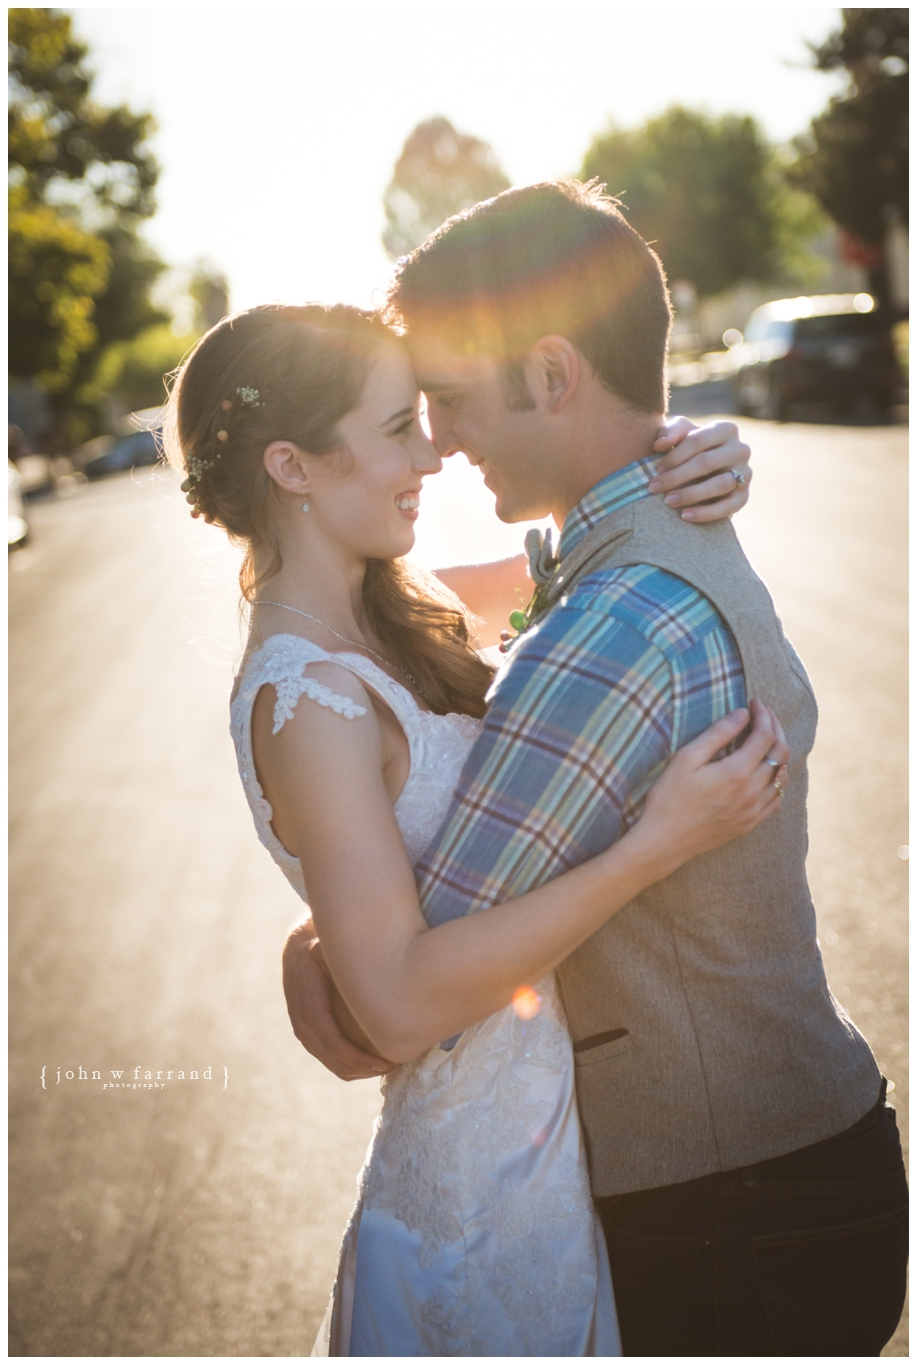 Hare-Wedding-Bakersfield-Wedding-Photography_011.jpg